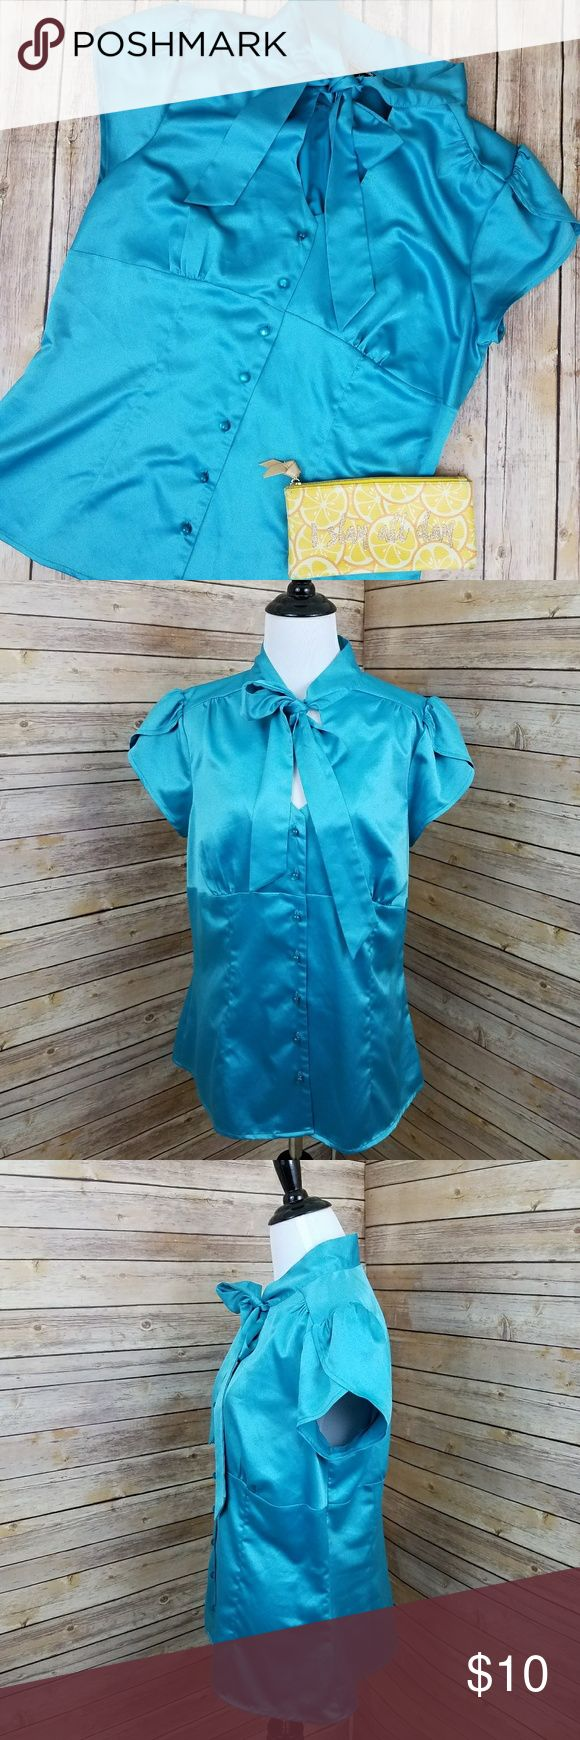 """MyMichelle Turquoise Bow Tie Neck Blouse XL MyMichelle brand Turquoise bright blue silky blend fabric button down blouse. Tulip style sleeves with satin ties at neckline into a bow. Great condition. Tagged size XL .  Measurements: Length 26"""" 18""""across front laying flat buttoned #ravenkittystyle #blouse #bowneckline #bowatneck #buttondown #professional #tulipsleeve #turquoise #blue #spring #professional #sizeXlarge #dressupordown My Michelle Tops Blouses"""